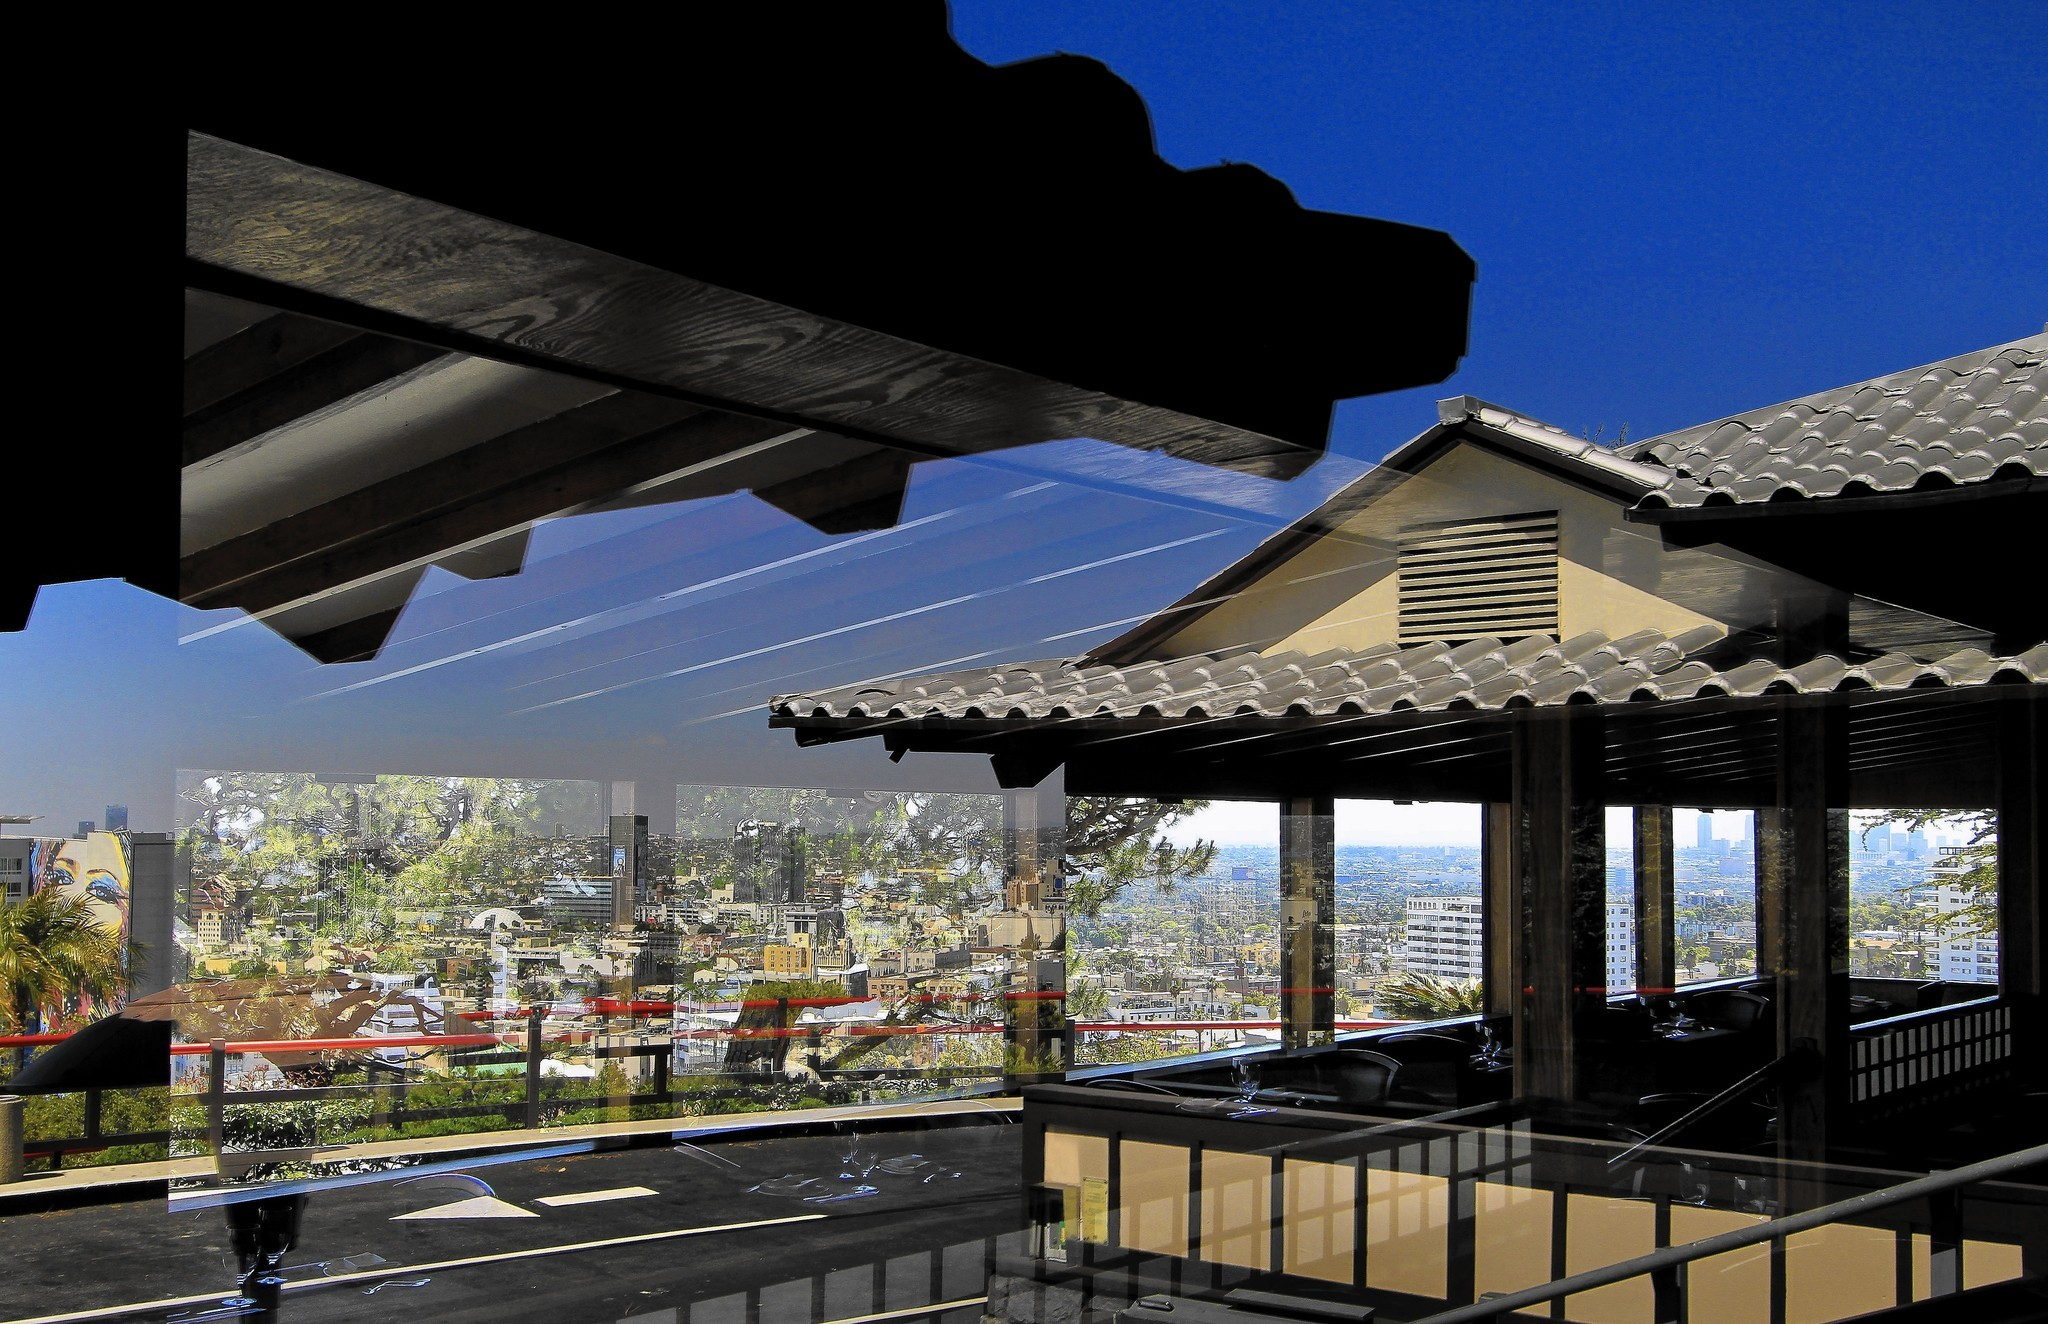 Yamashiro may get booted from its Hollywood Hills building ...